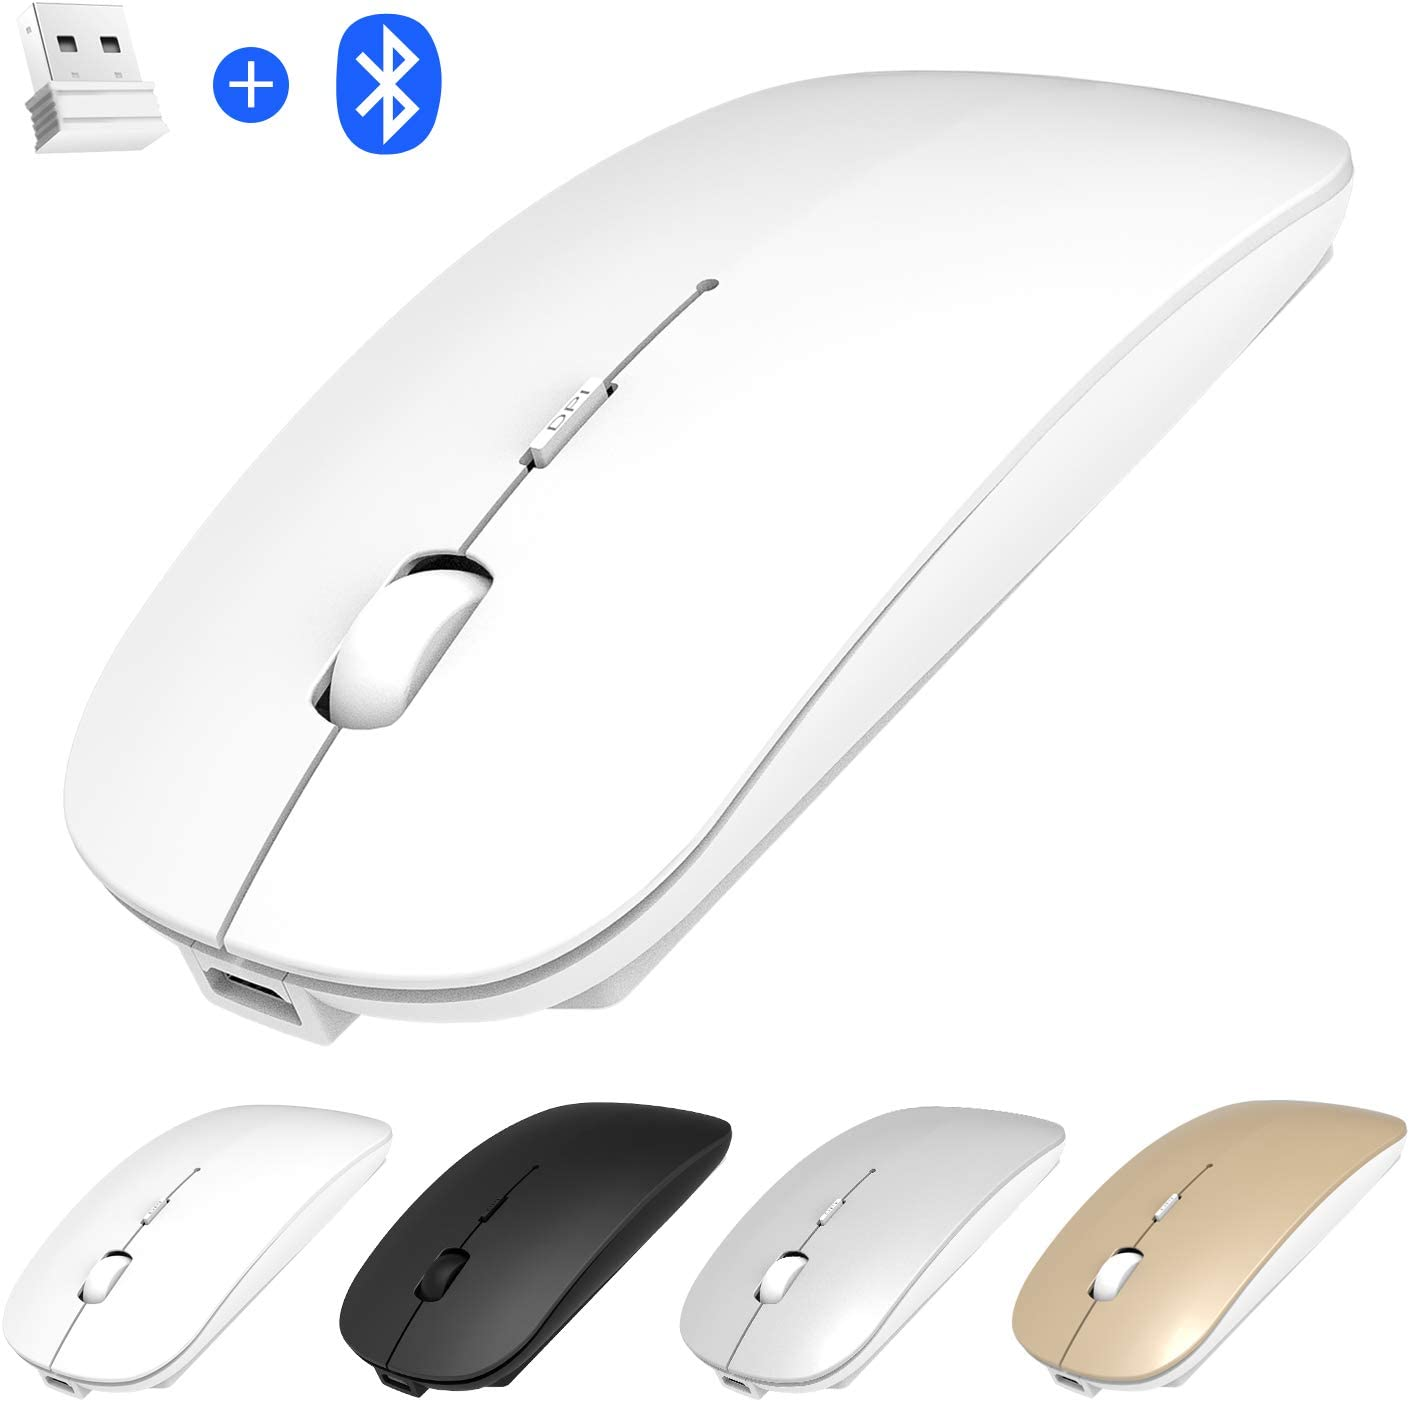 Rechargeable Bluetooth Mouse, Dual Mode Bluetooth and 2.4GHz Wireless Mouse Compatible for MacBook, Laptop, Windows, PC, Computer, Notebook, Mac,Android Tablet,Ipad Mouse